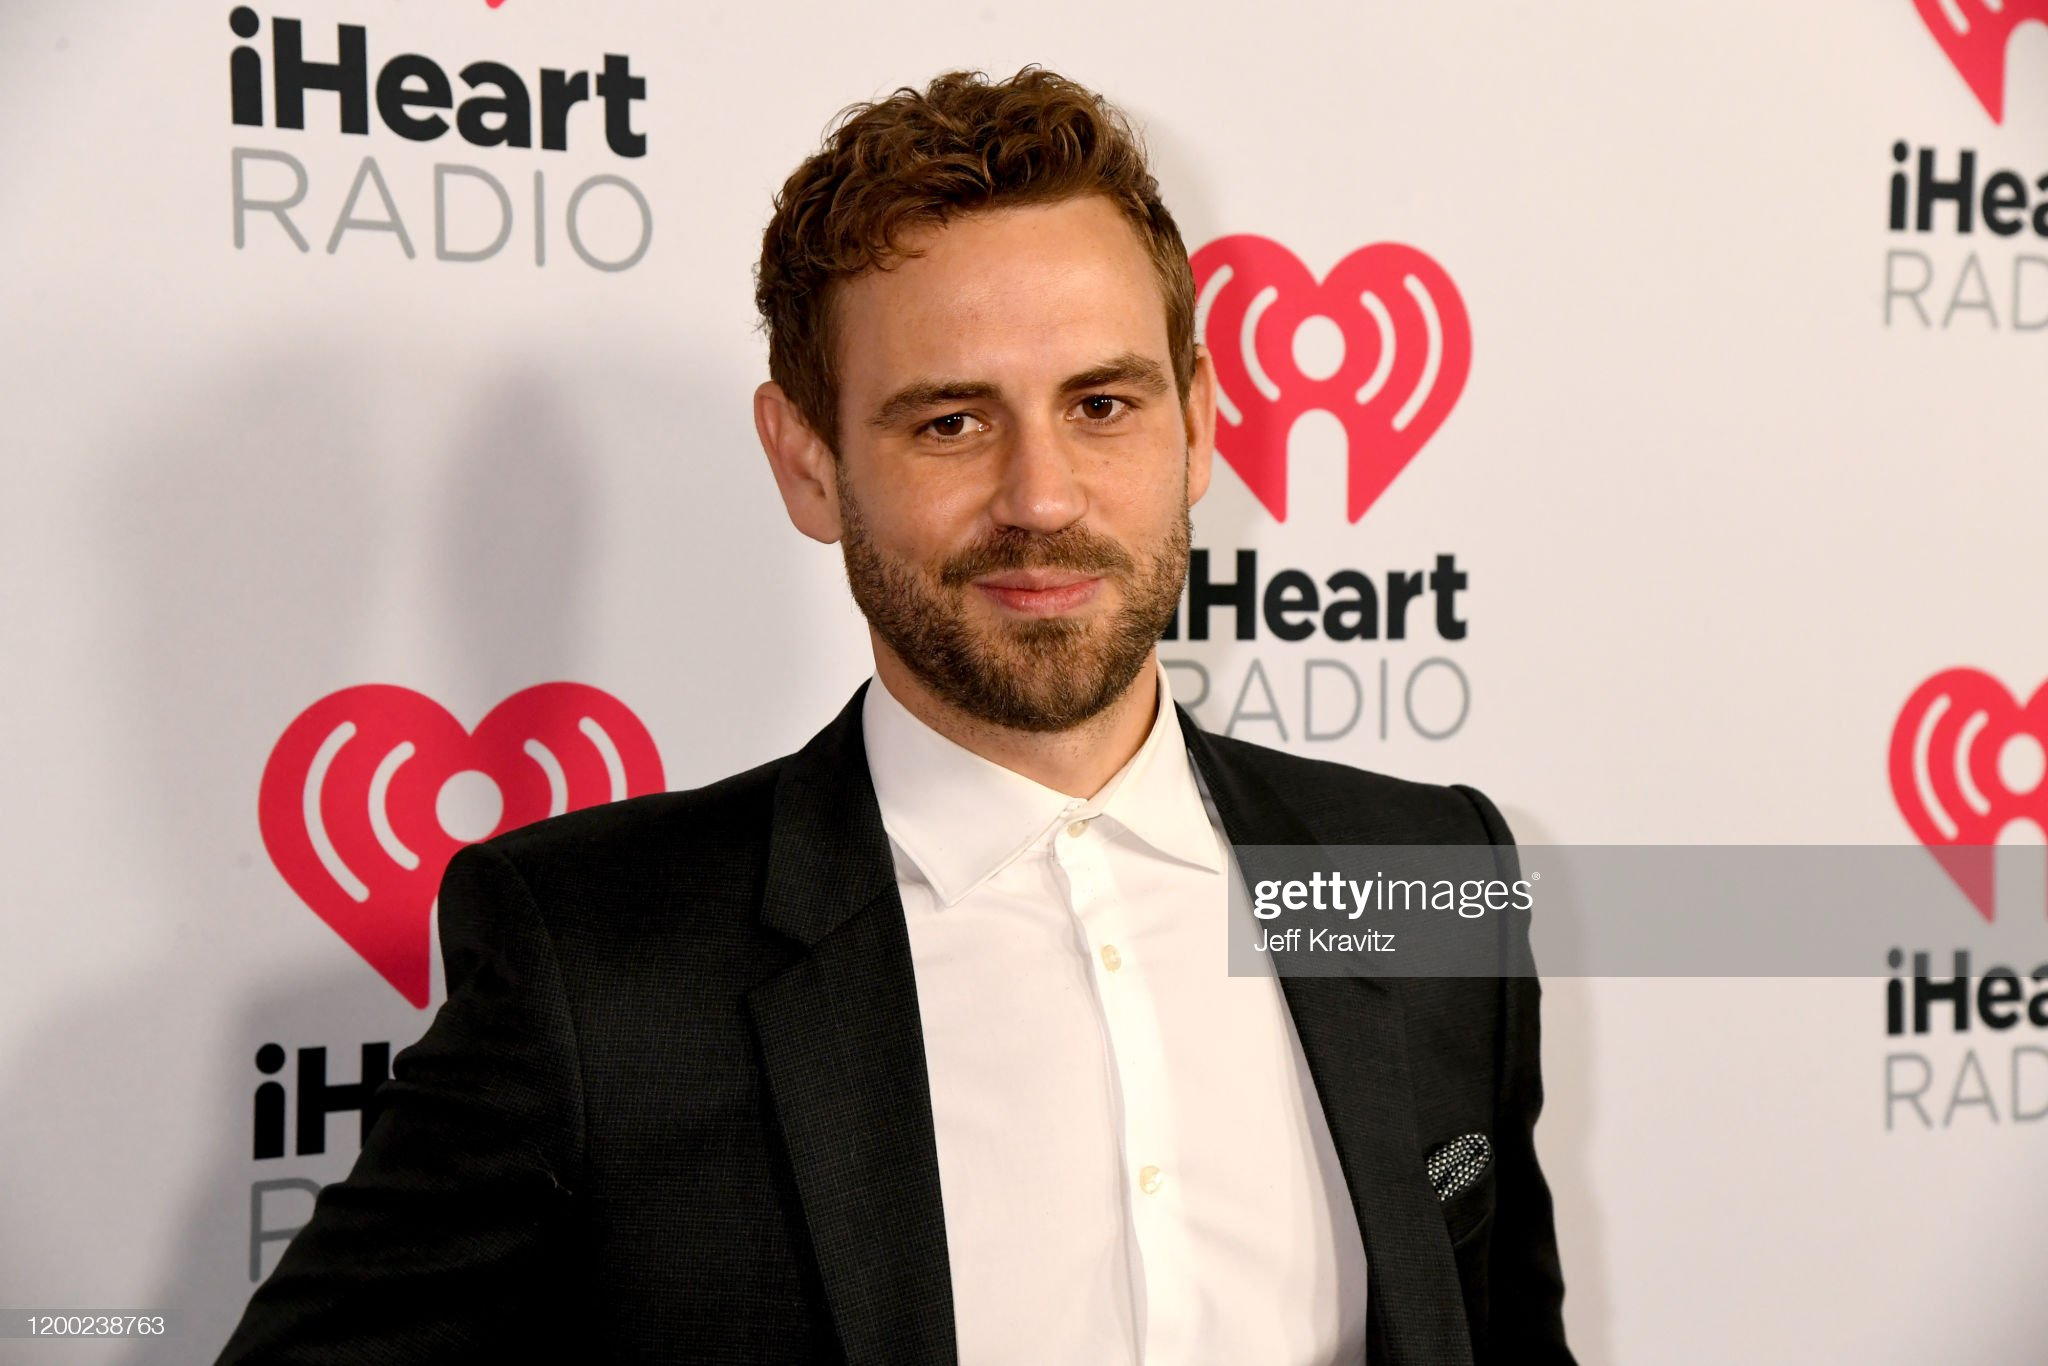 Nick Viall - Bachelor 21 - FAN Forum - Discussion #27 - Page 69 Nick-viall-attends-the-2020-iheartradio-podcast-awards-at-the-on-picture-id1200238763?s=2048x2048